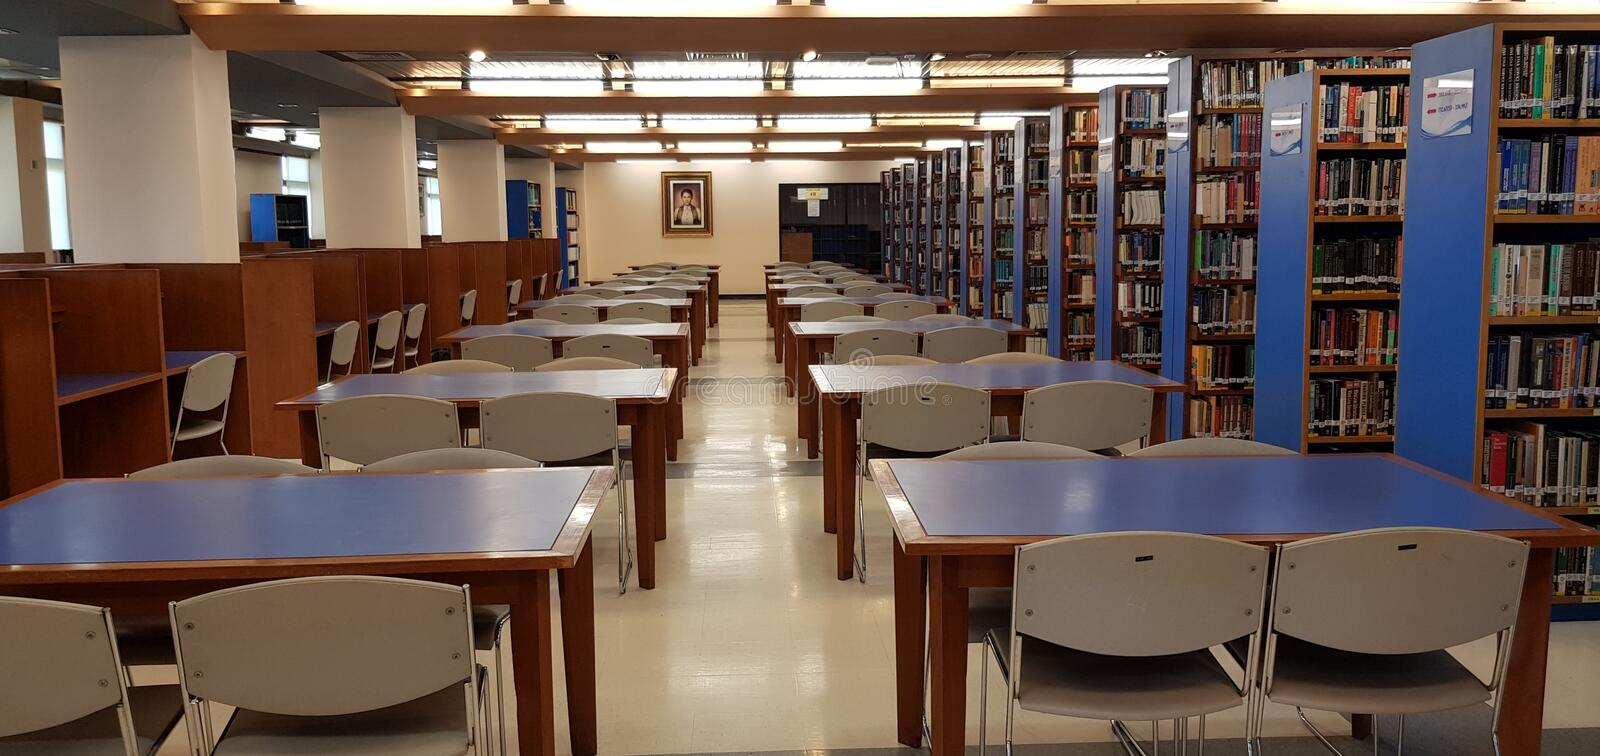 The Library royalty free stock photography